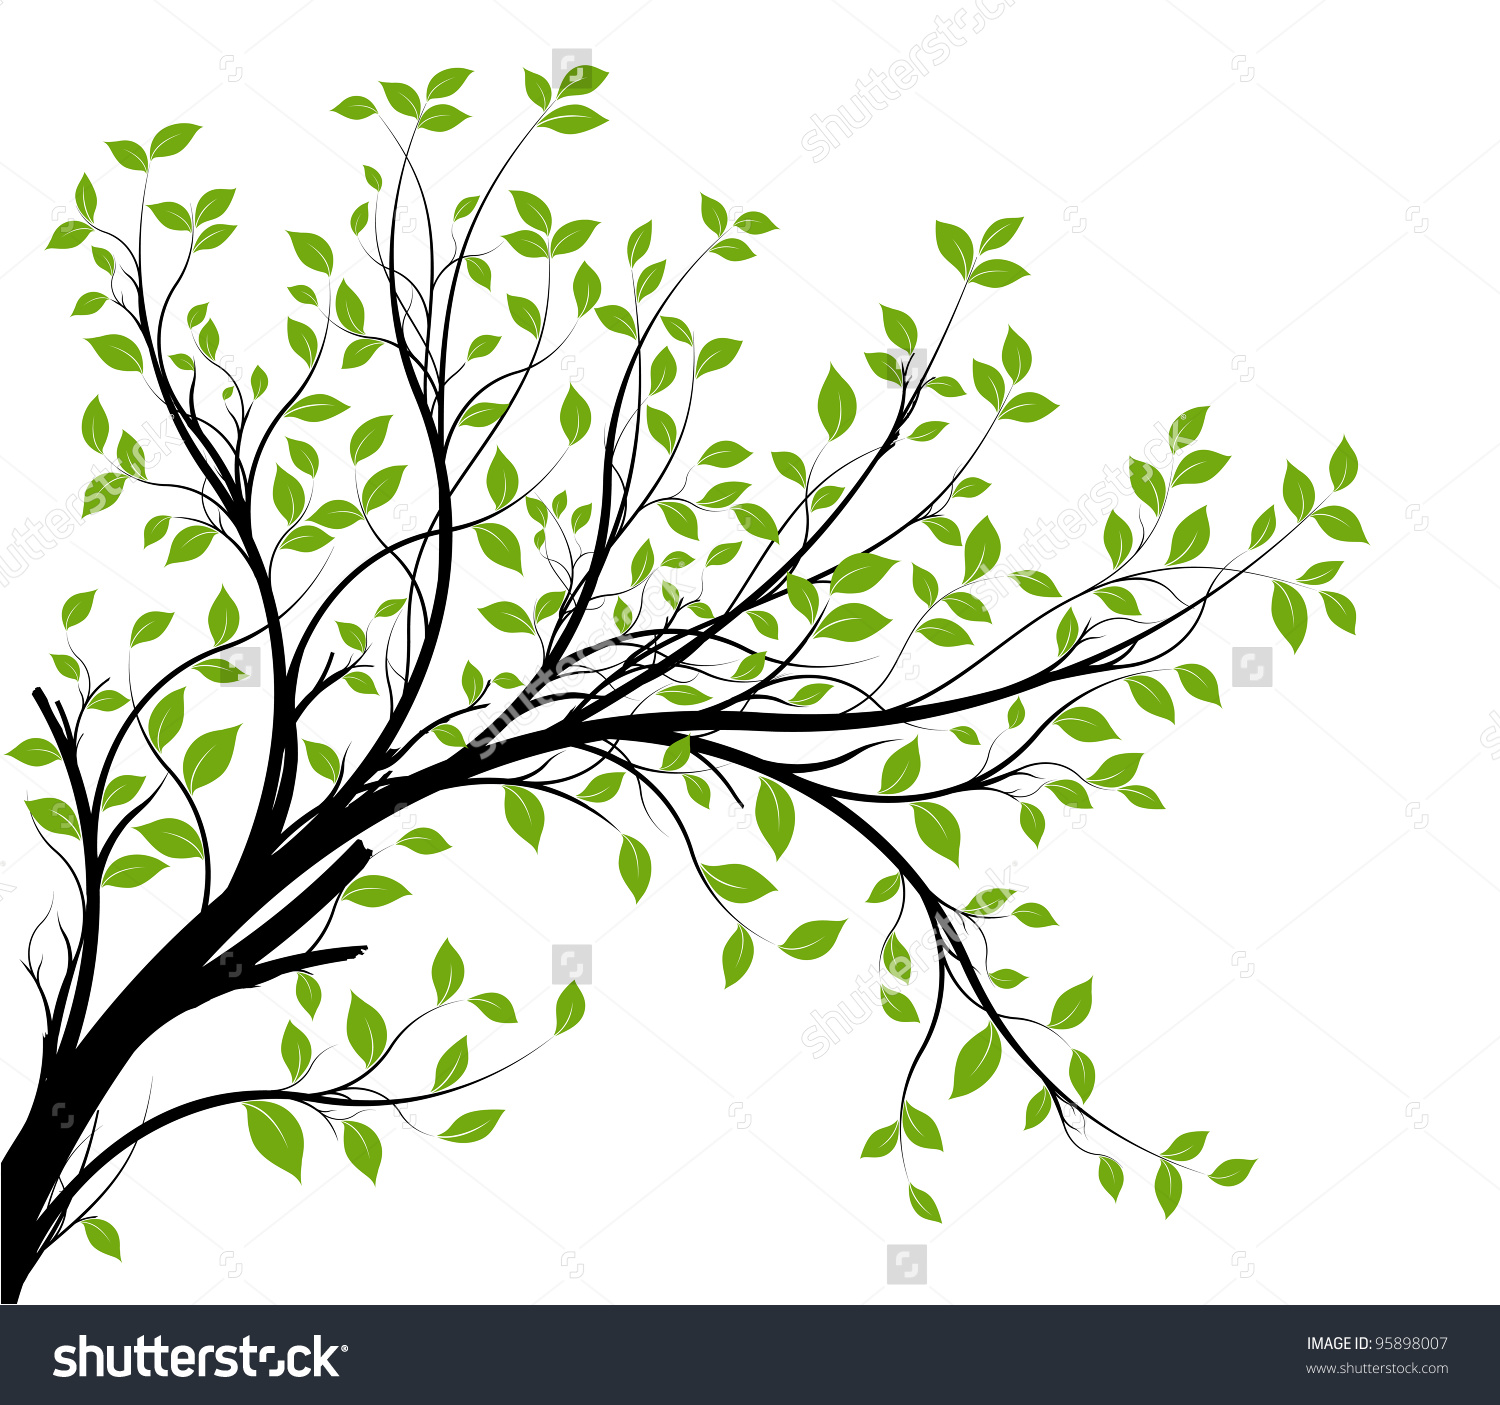 Vector Decorative Branch Silhouette Green Leaves Stock Vector.